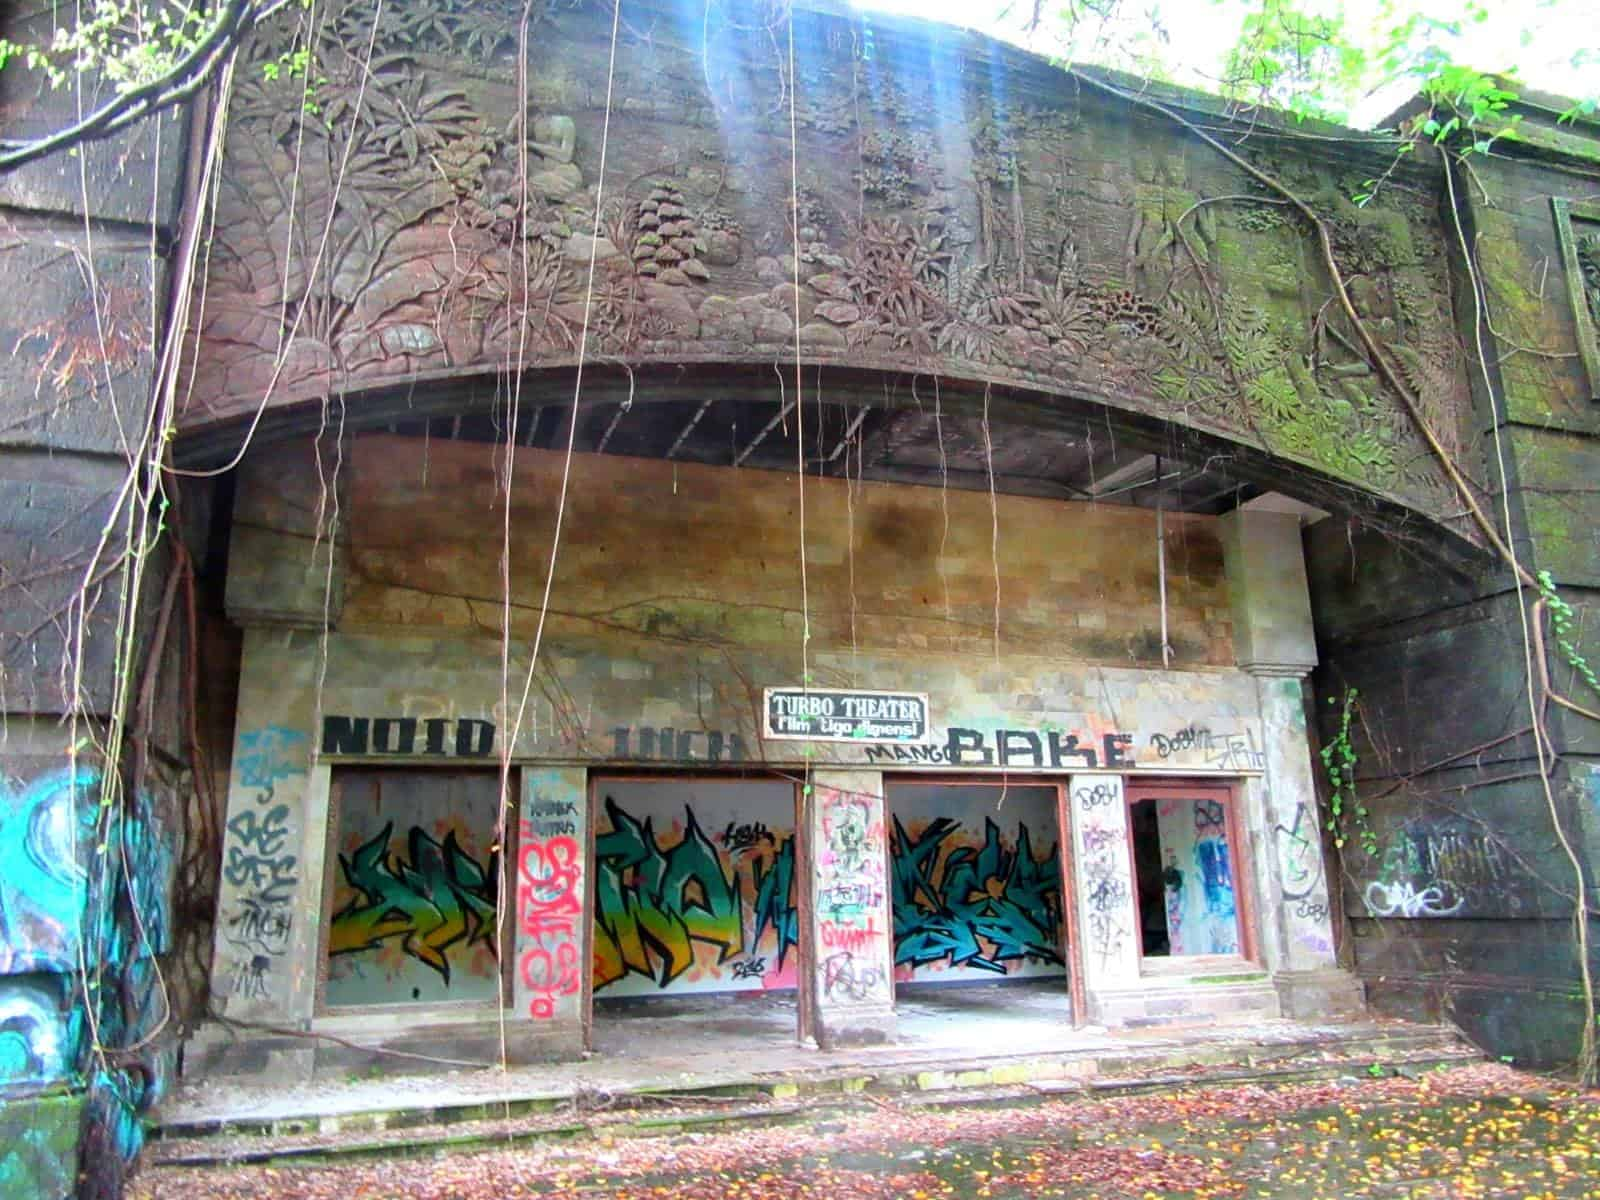 The Entranceway of the Derelict 3D Cinema at Taman Festival